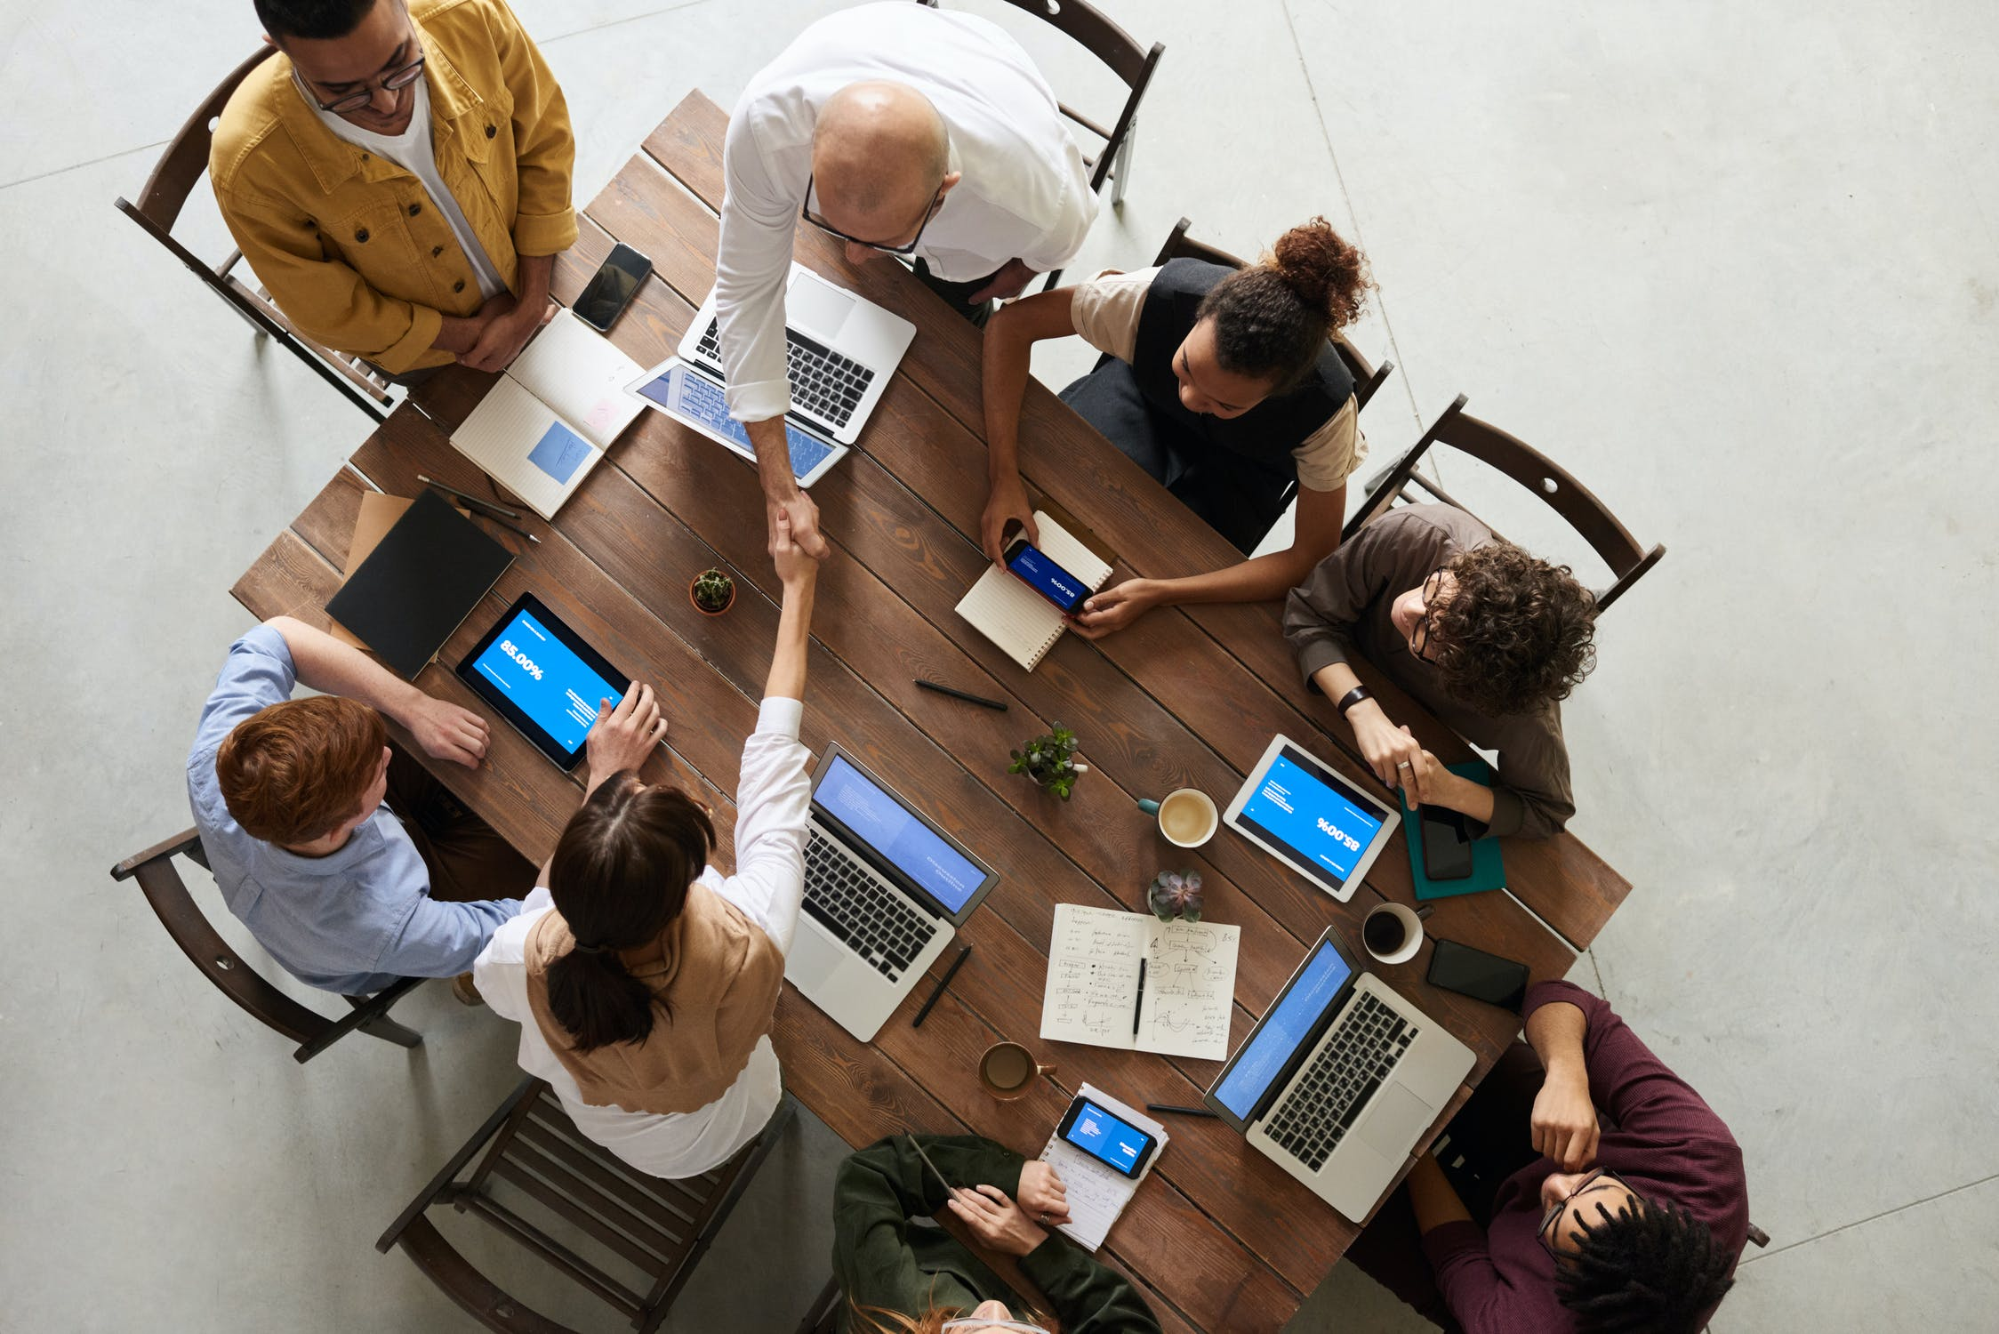 Eight people around a table in a business meeting.